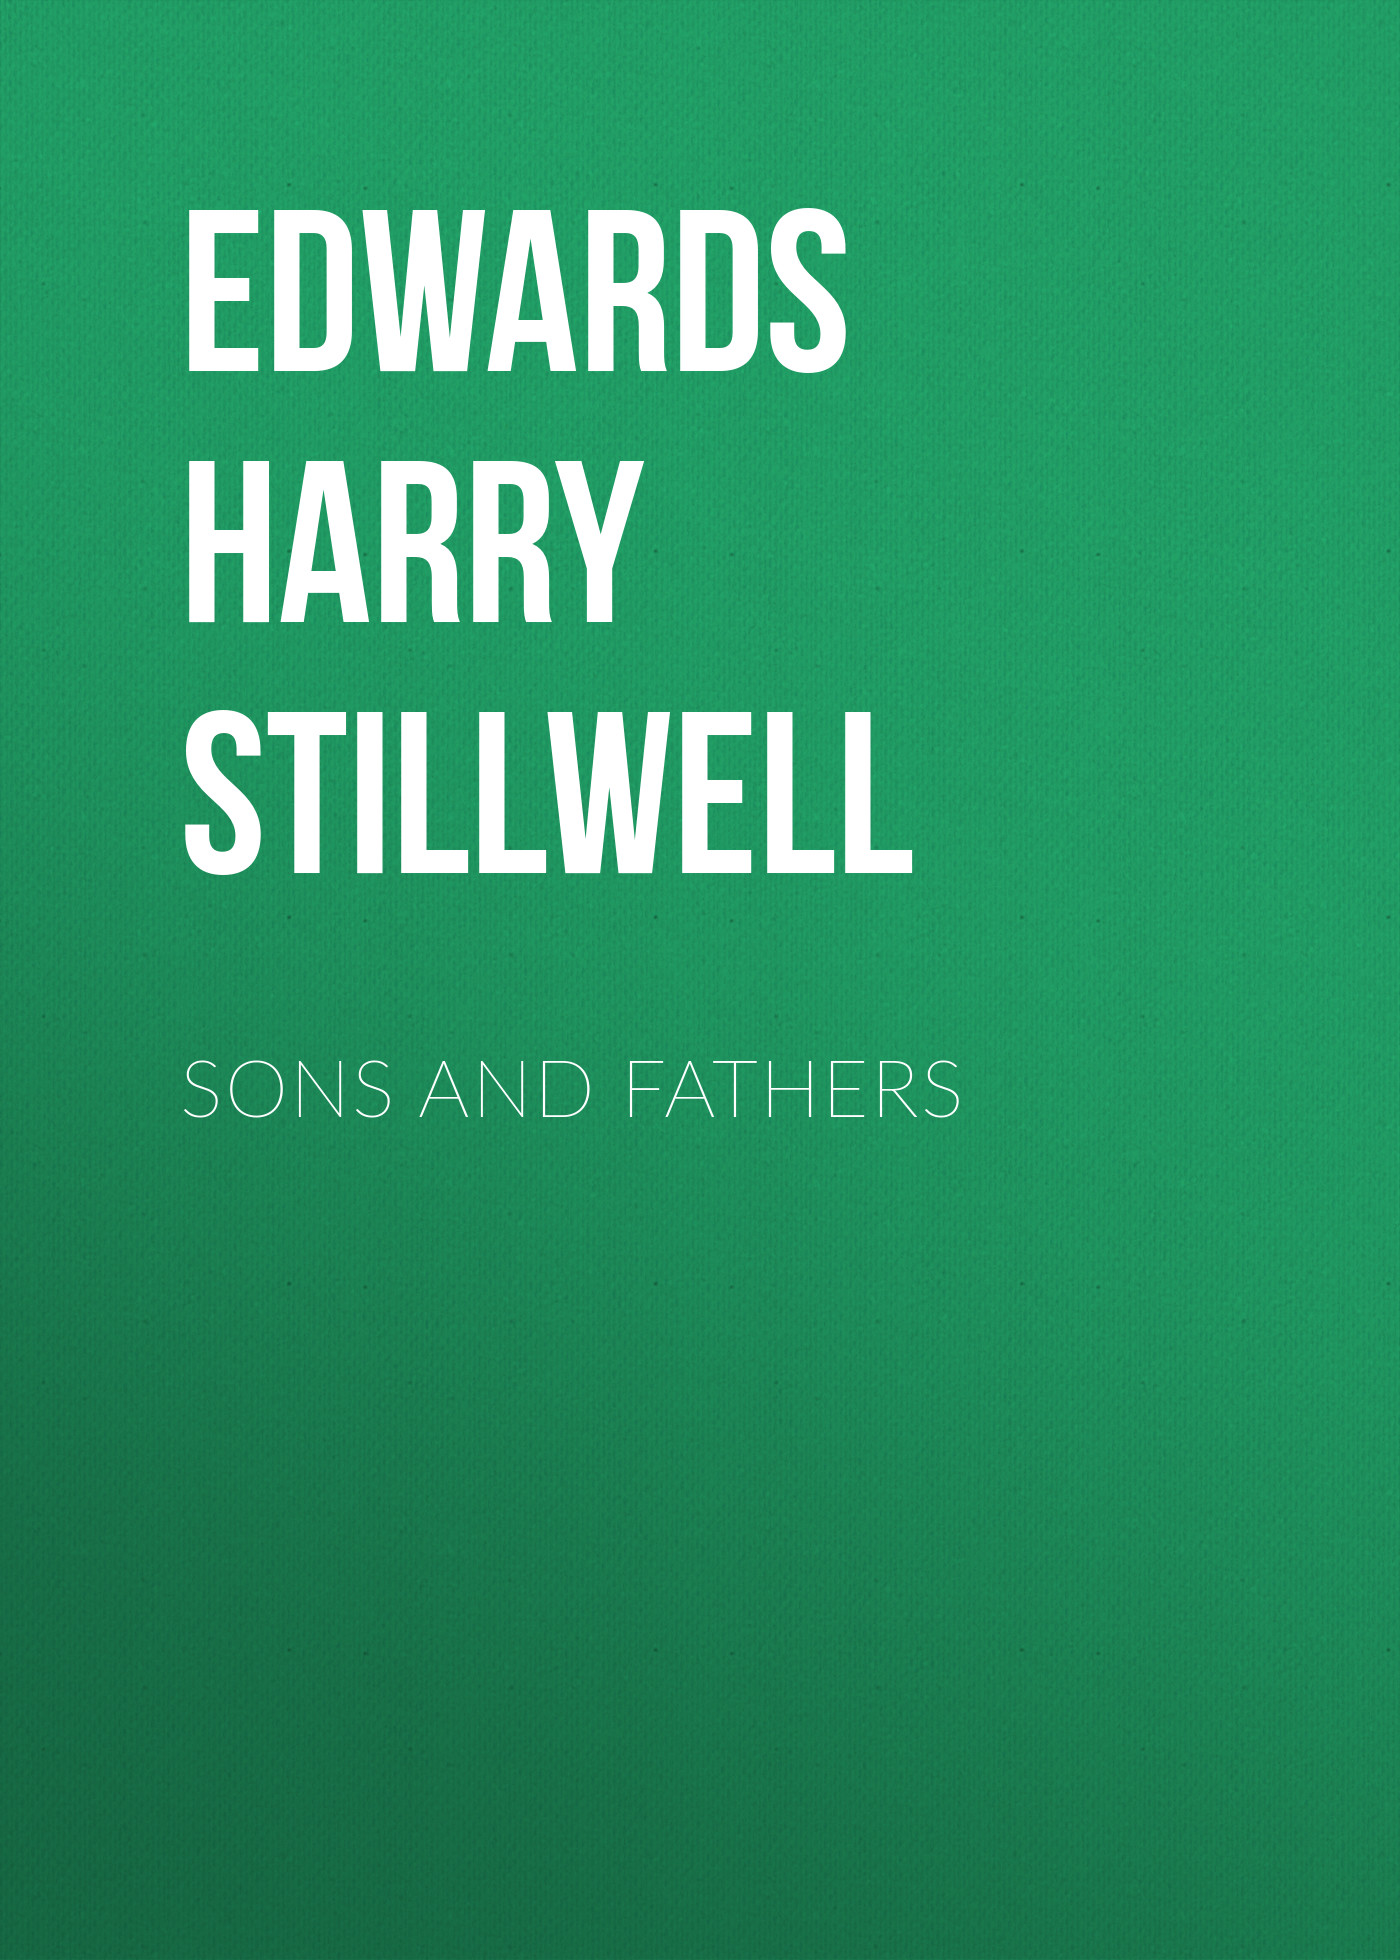 Edwards Harry Stillwell Sons and Fathers